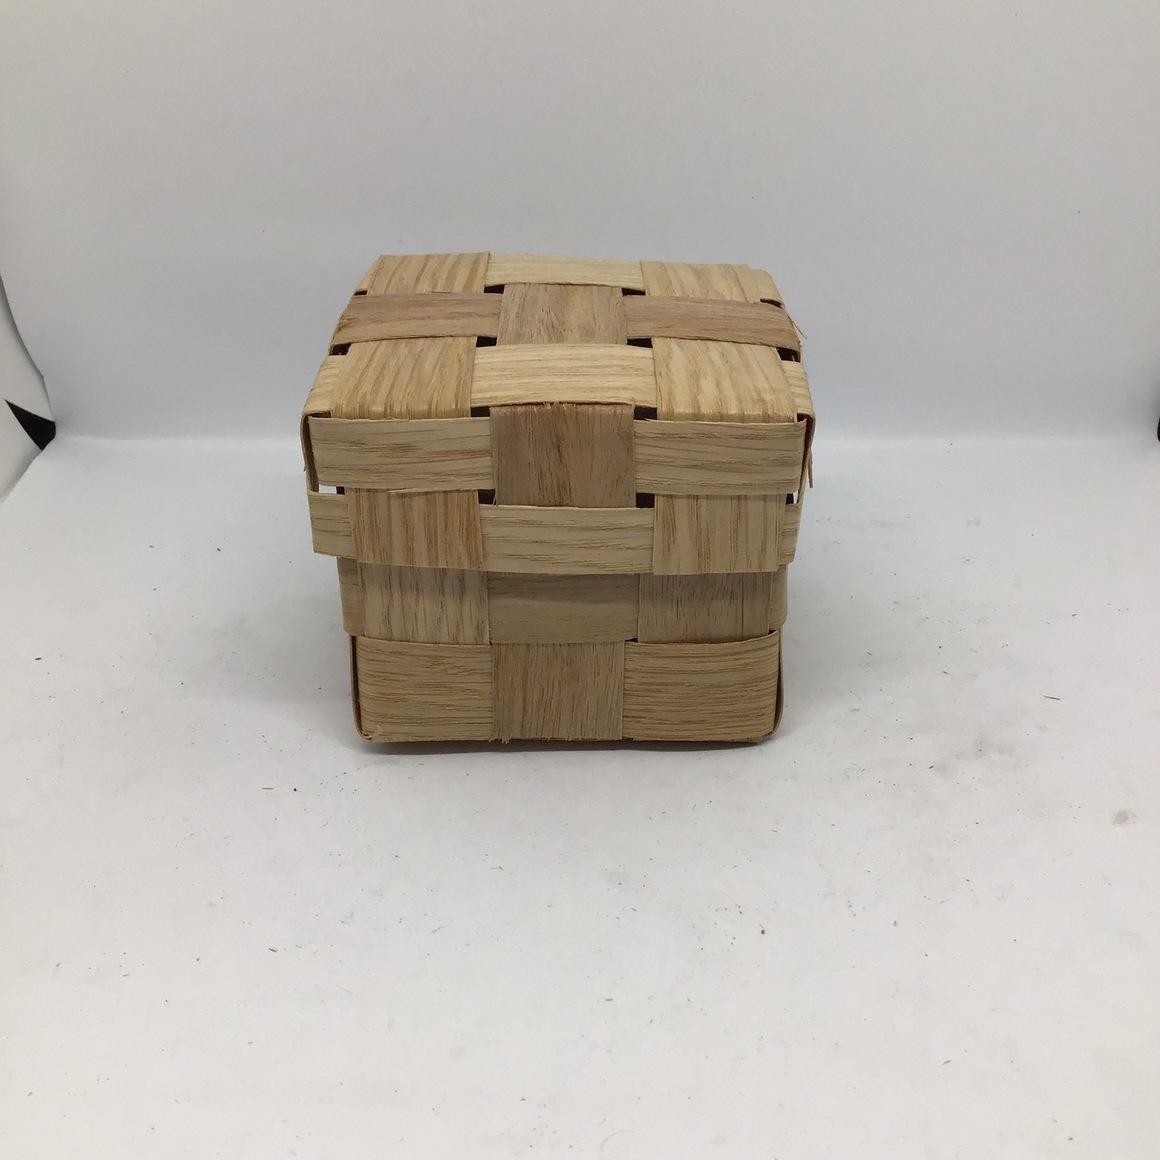 Wooden Box with Lid (10x10x9cm) Woven from reclaimed timber veneer -Gift box, hamper | Trada Marketplace